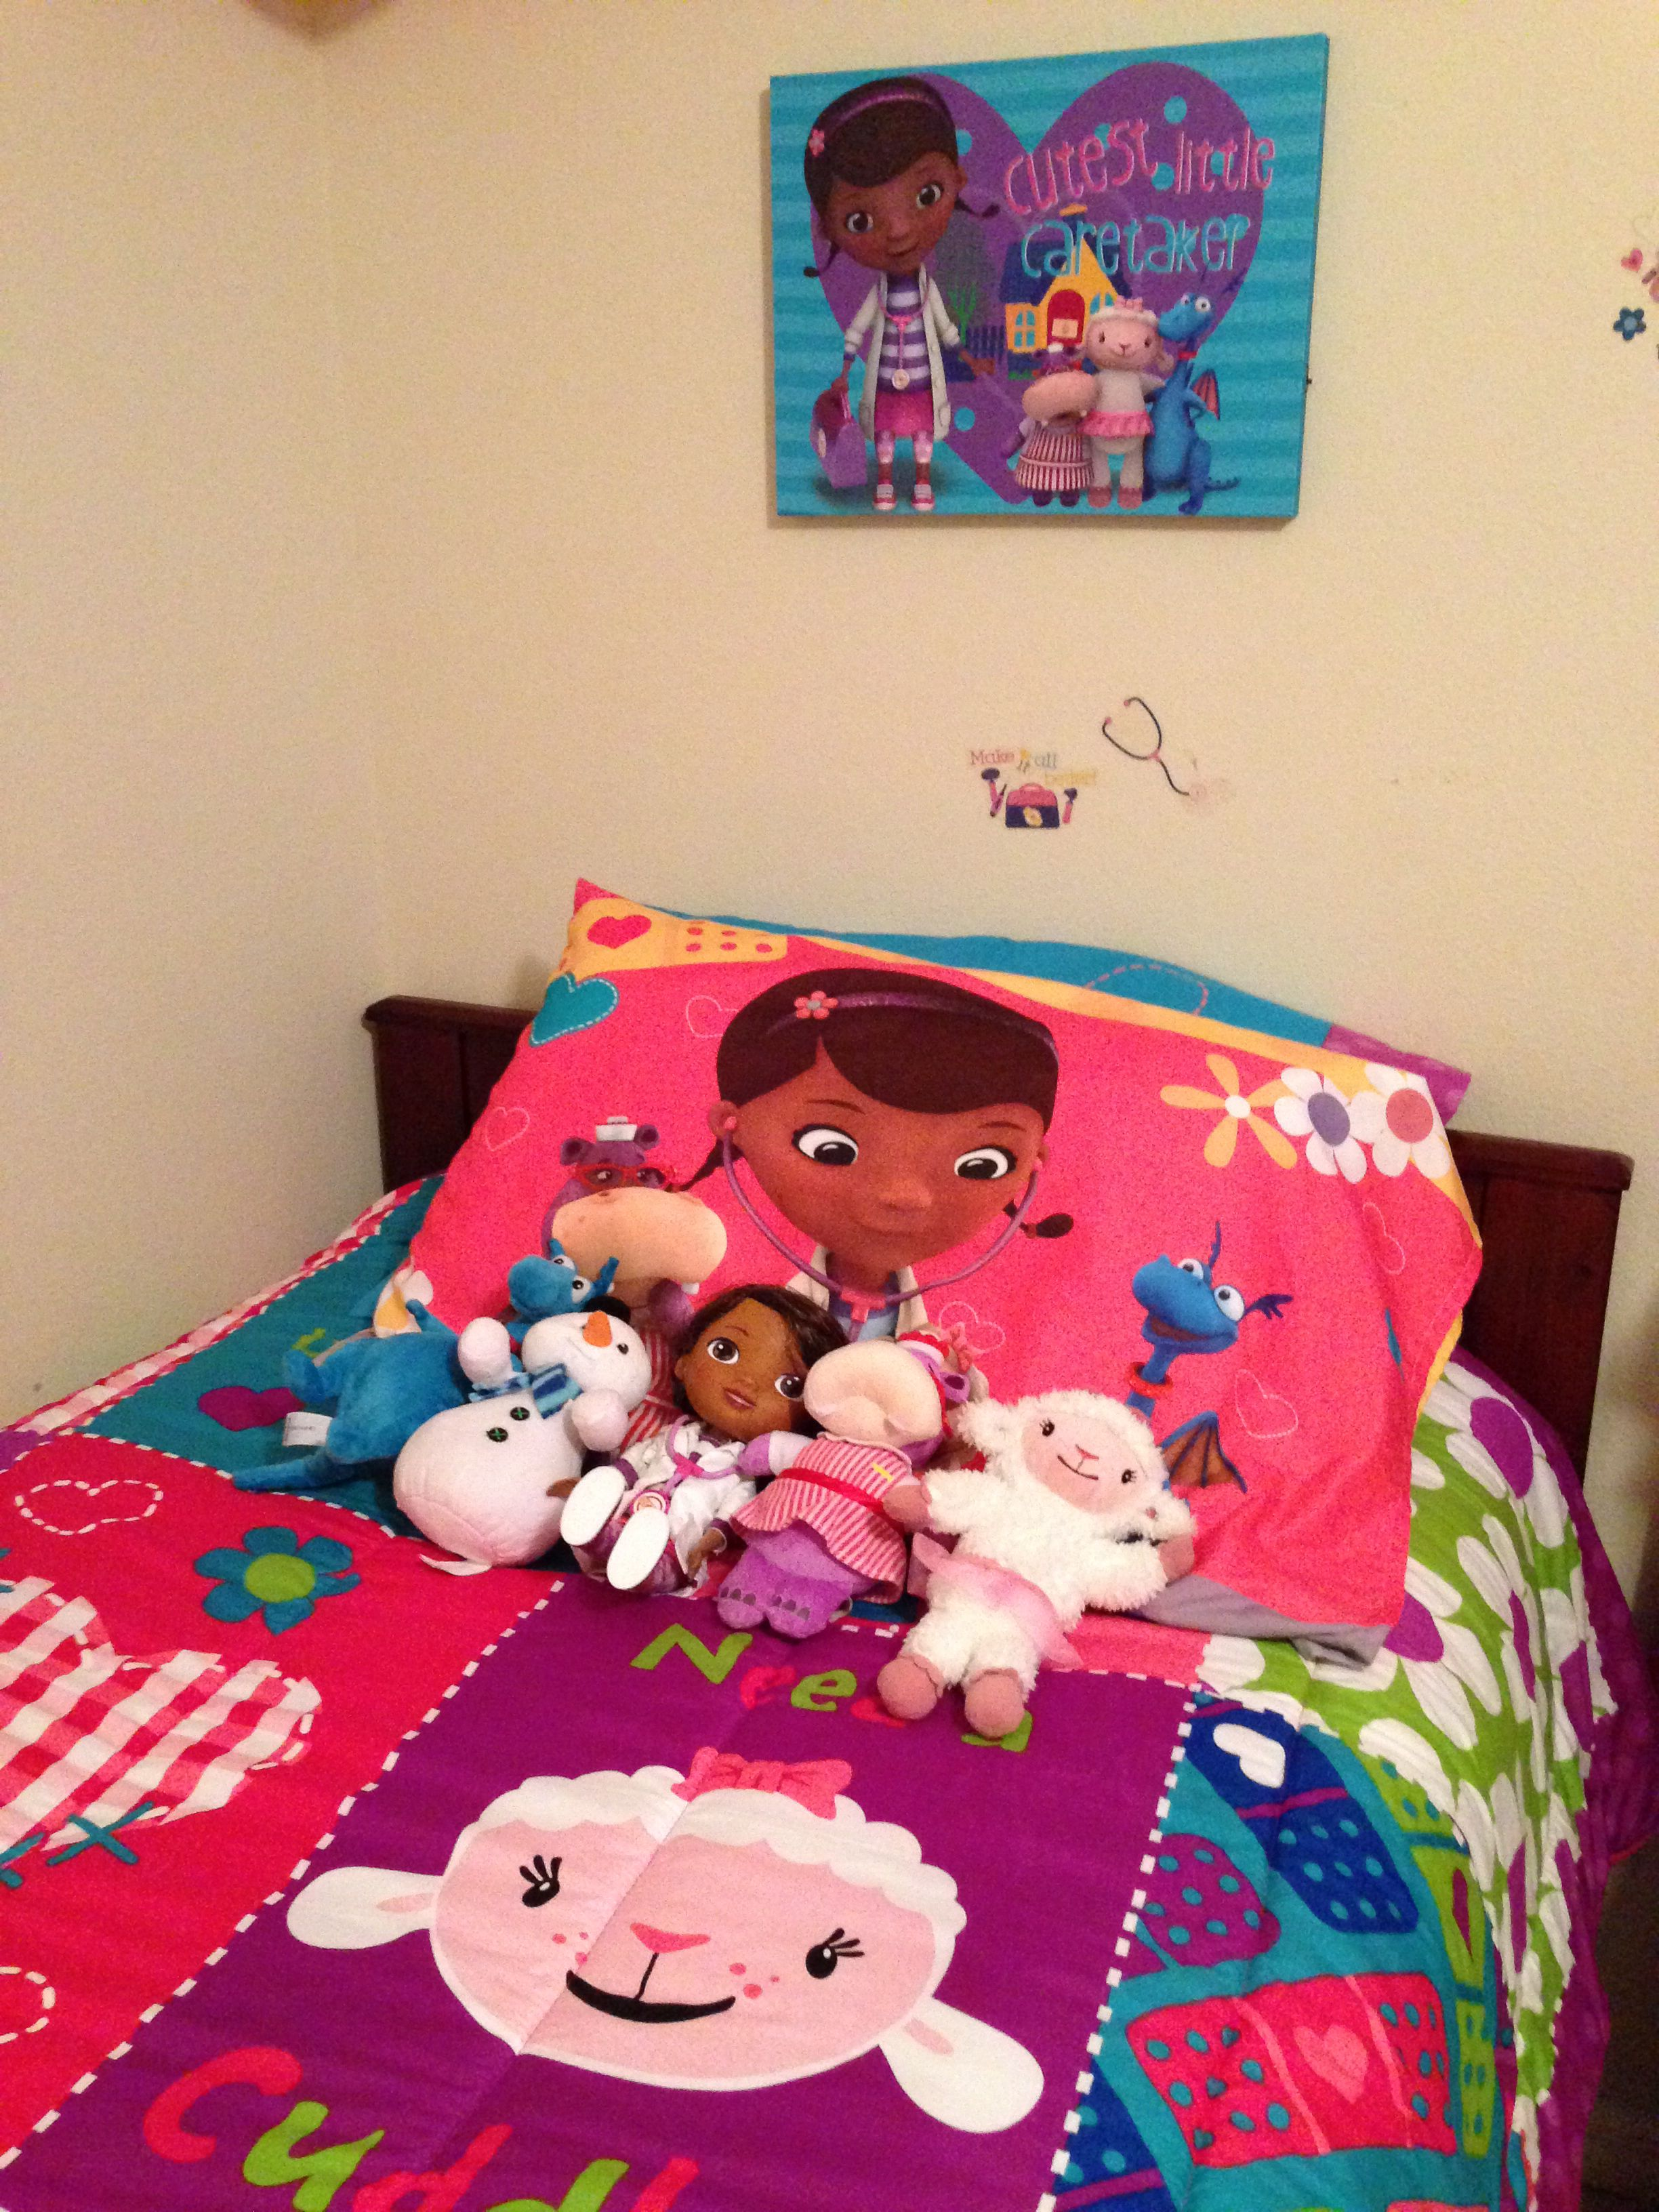 doc mcstuffins bedding doll and characters tatiana s 15191 | cc9bc076f111726045e35f5a6a5be658